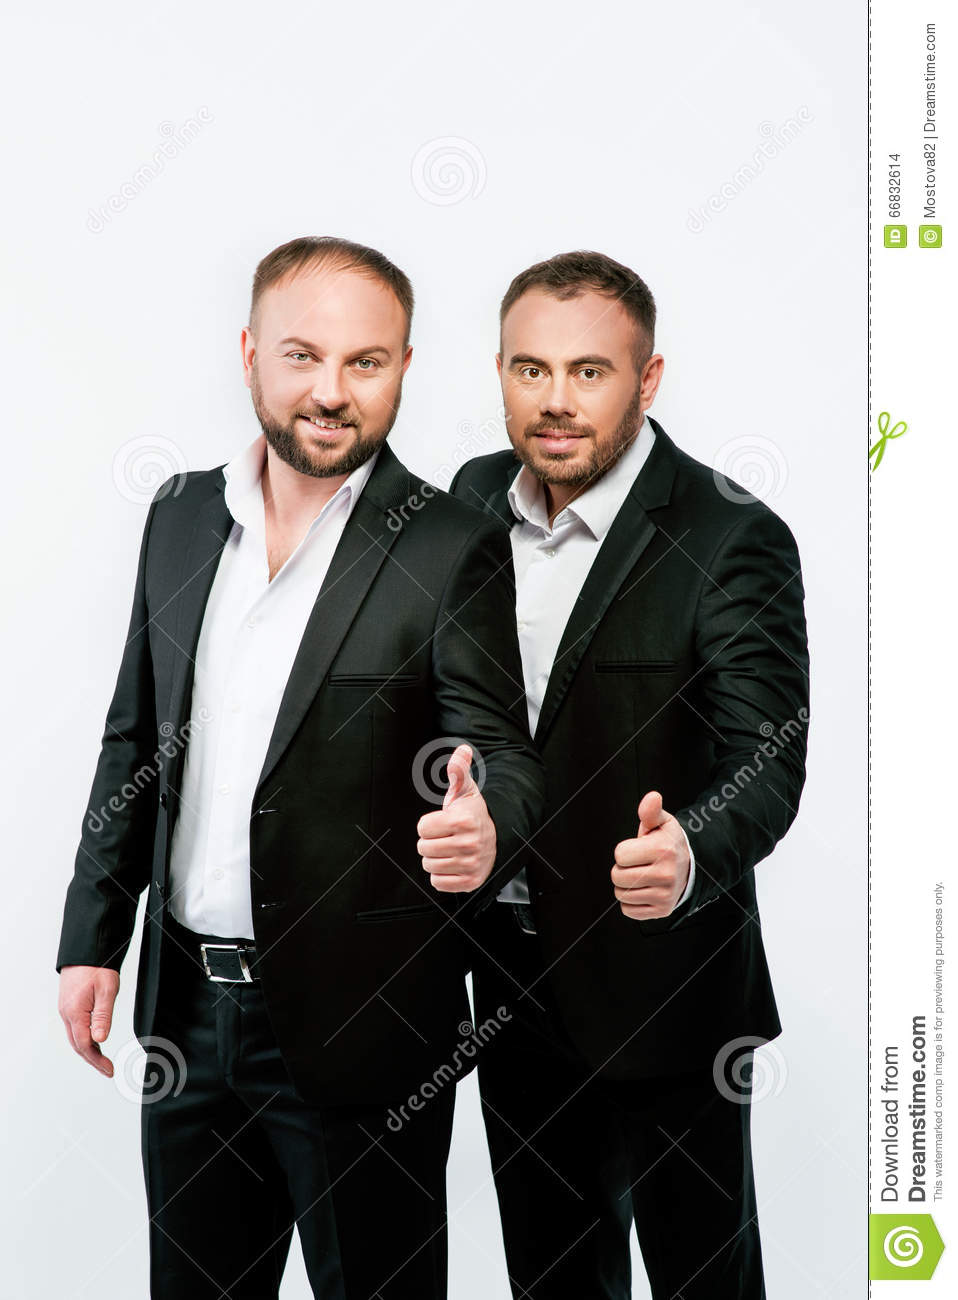 Portrait Of Two Men In Black Suits Stock Photo  Image. Uw Tacoma Graduate Programs Diabetes 2 Diets. Lower Back Pain Relief Exercises. Google Adwords Landing Page Fowler Law Firm. Marine Infantry School Aalas National Meeting. Factoring Using The Gcf Credit Card Counselor. 7th Grade English Language Arts. Heating And Air Conditioning Services. Unsecured Business Line Of Credit With Bad Credit